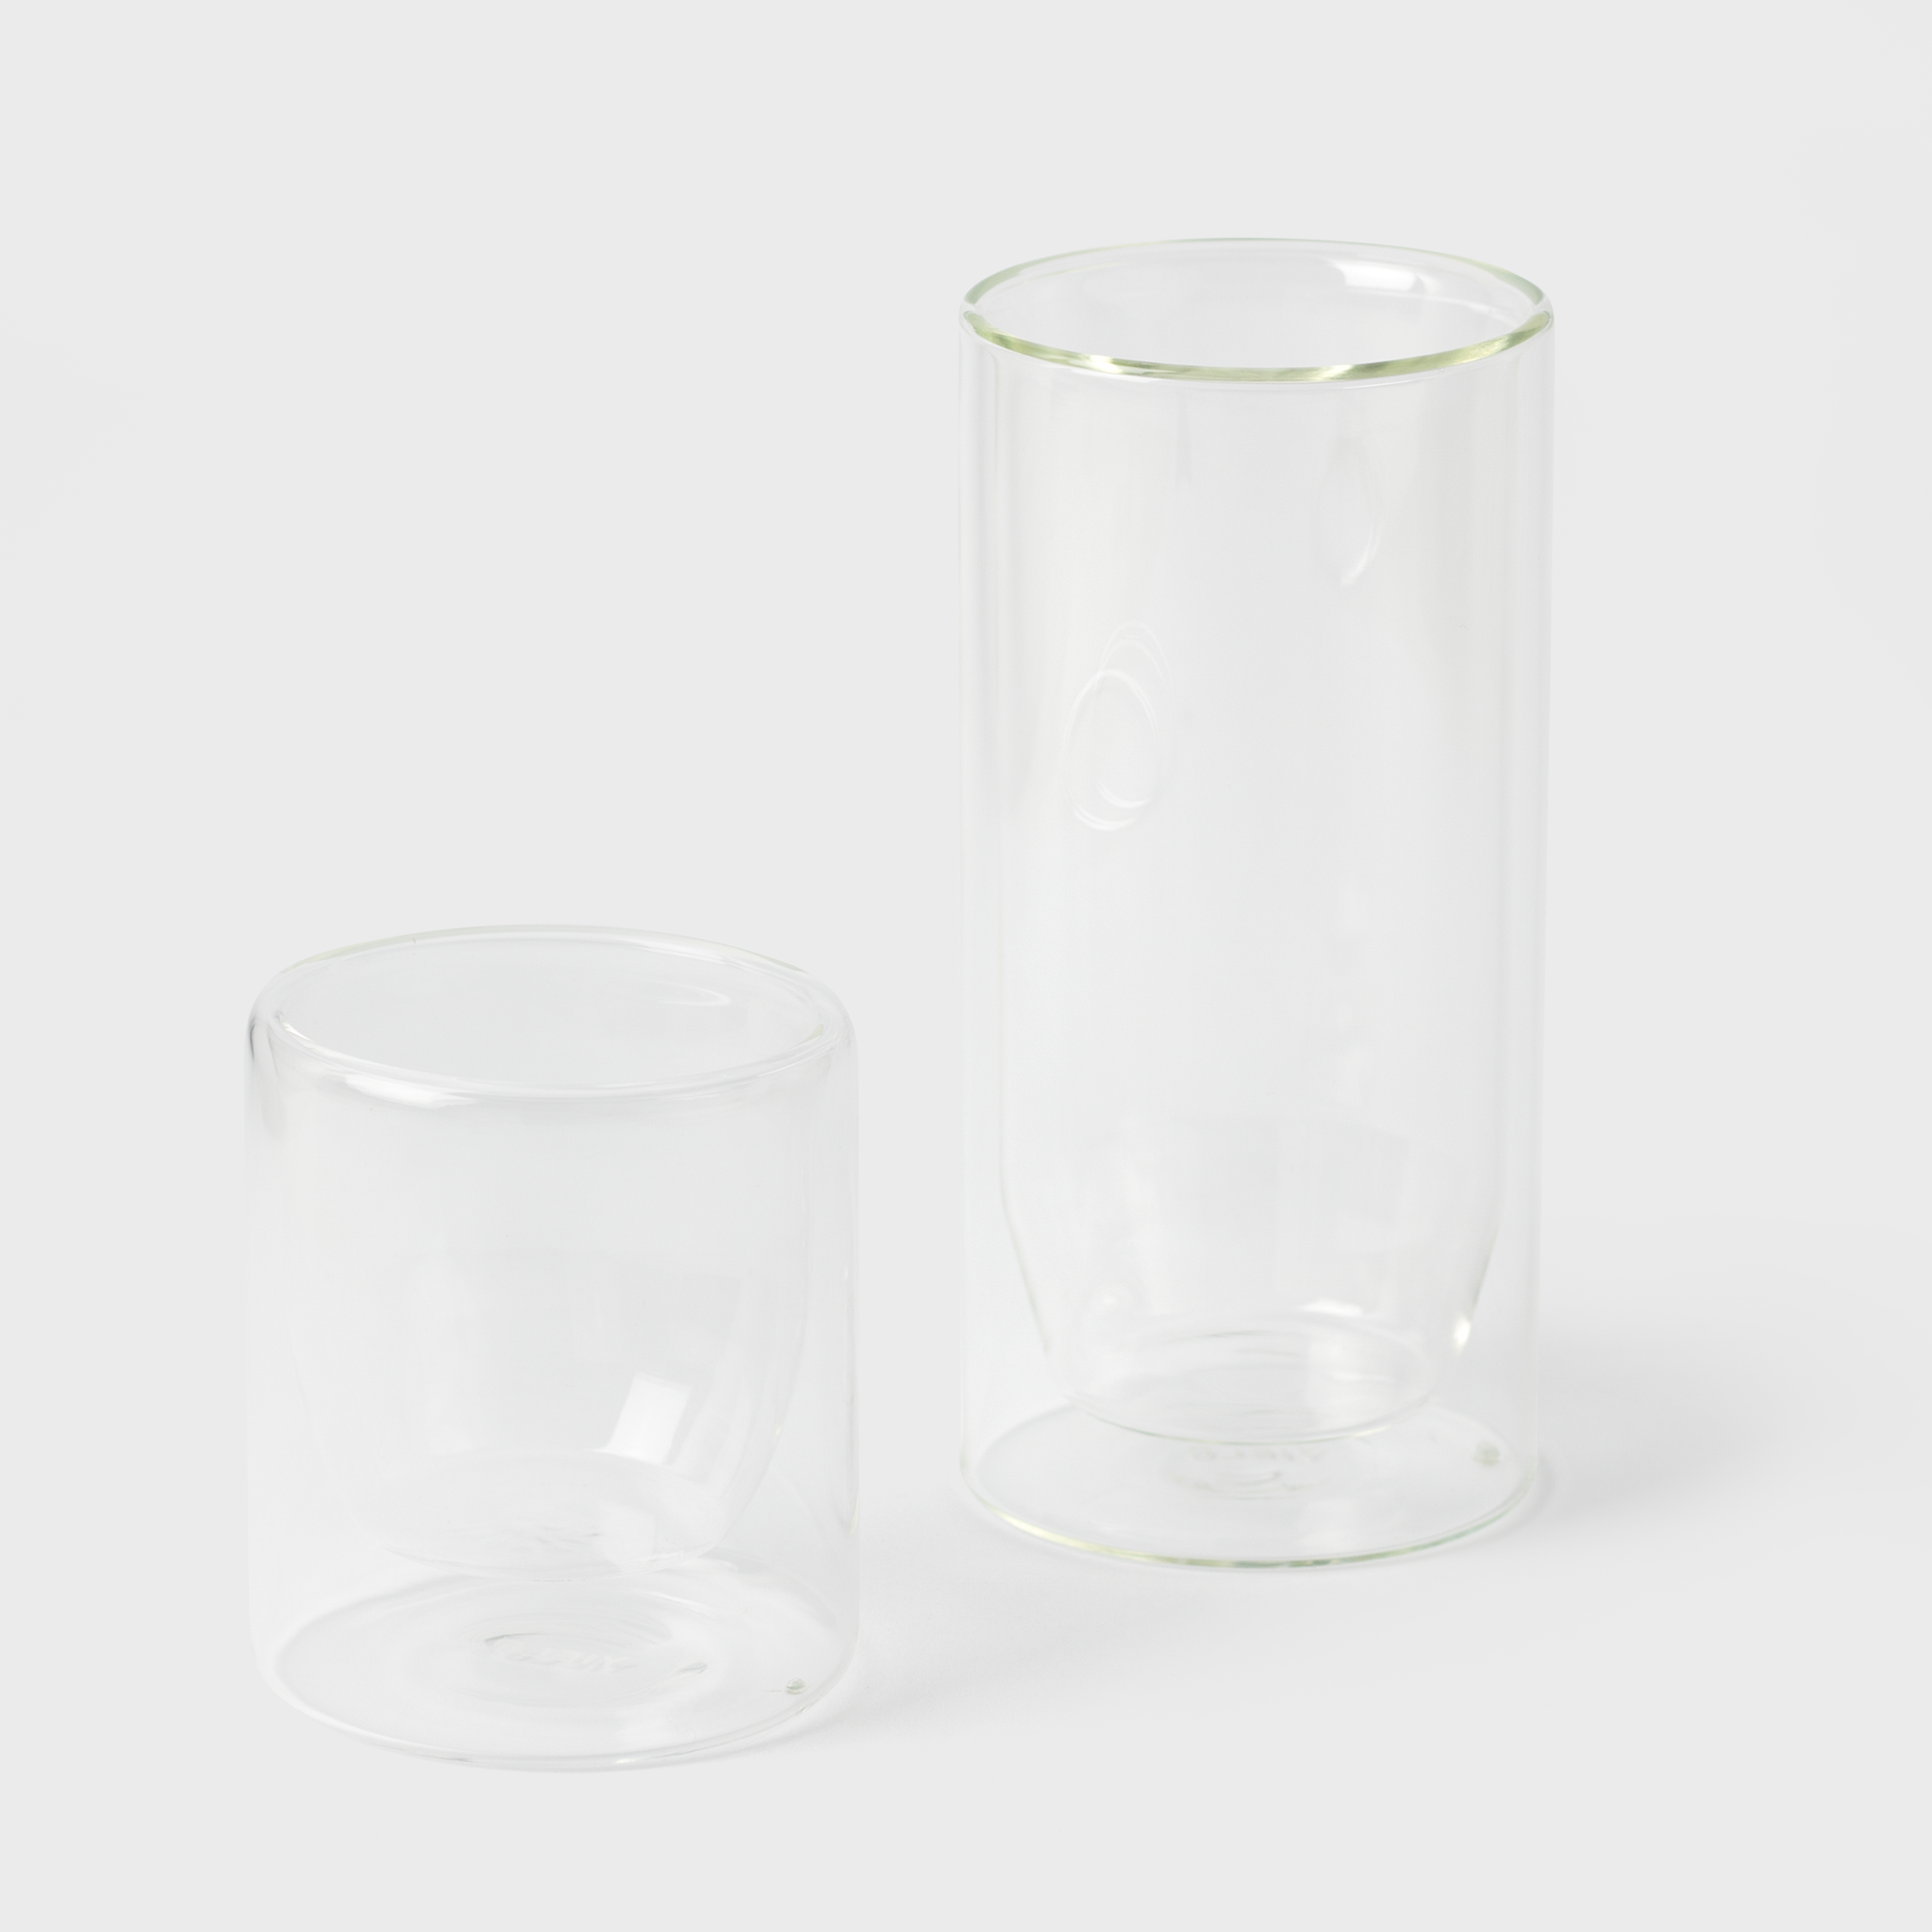 Clear Lowball Glasses - Set of 2